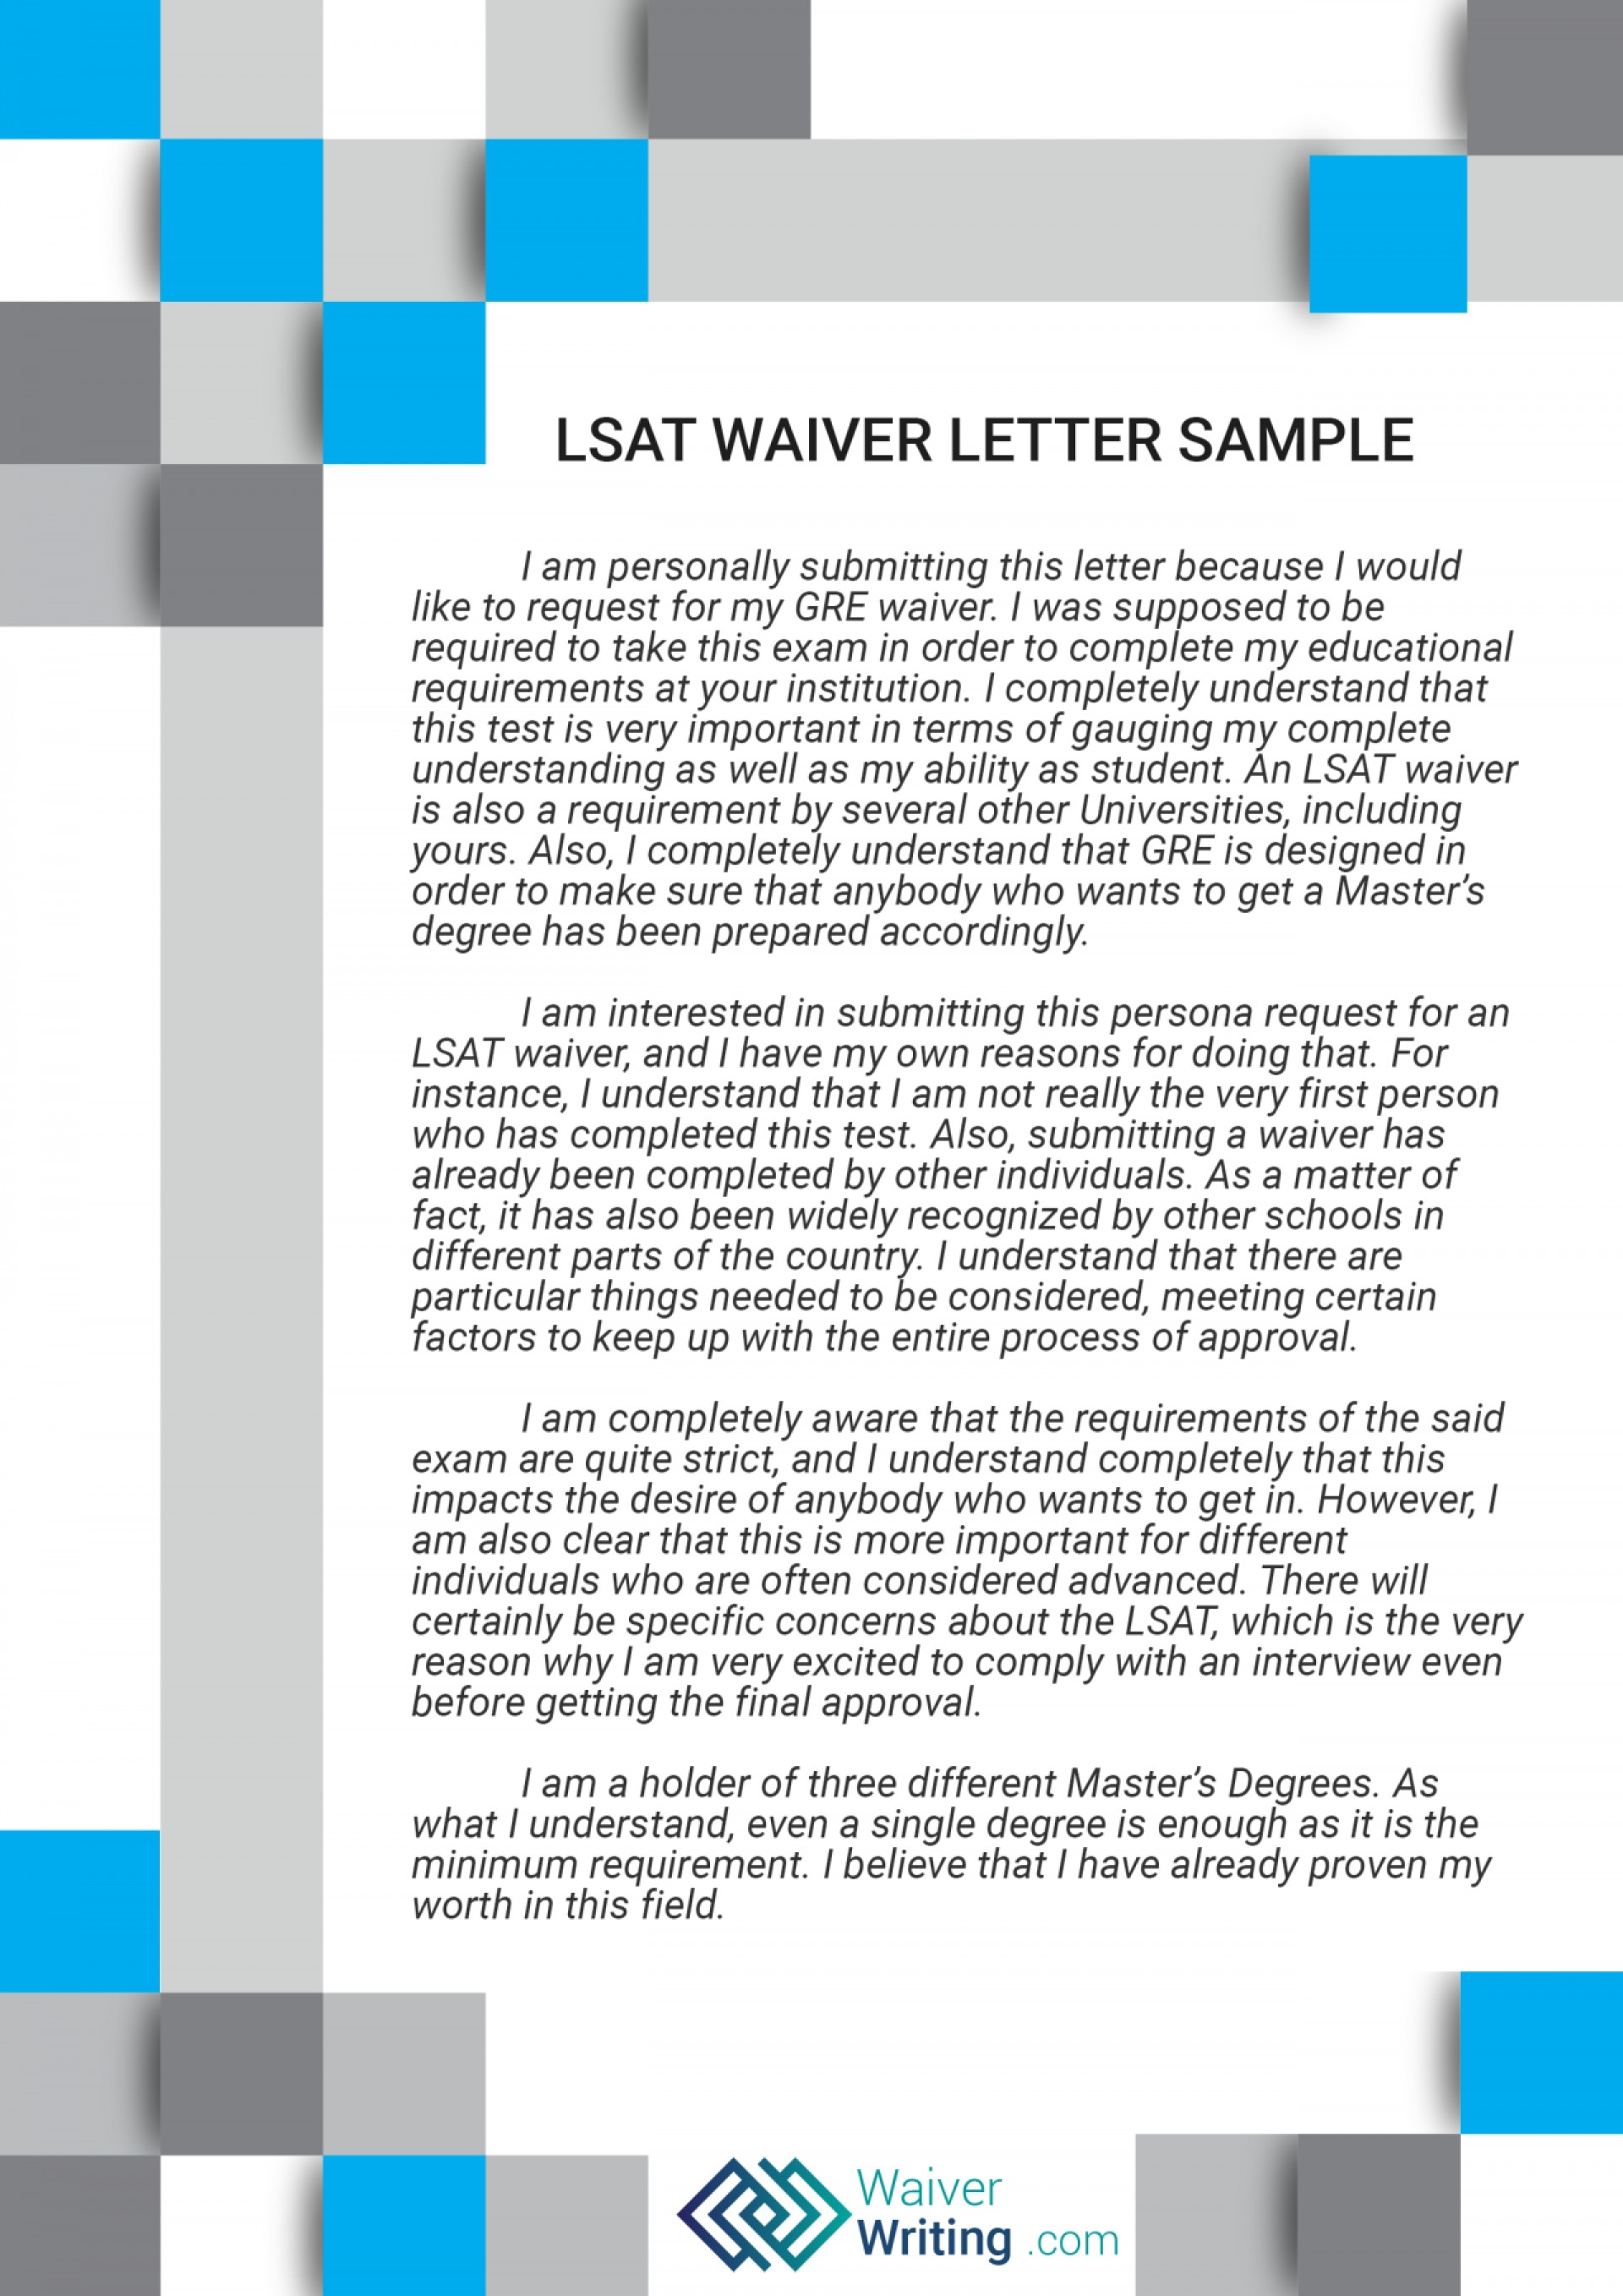 010 Essay Example Tumblr Ode077tgcl1vfim2xo1 1280 Gmat Shocking Sample Waiver Topics Awa Essays Free Download 1920